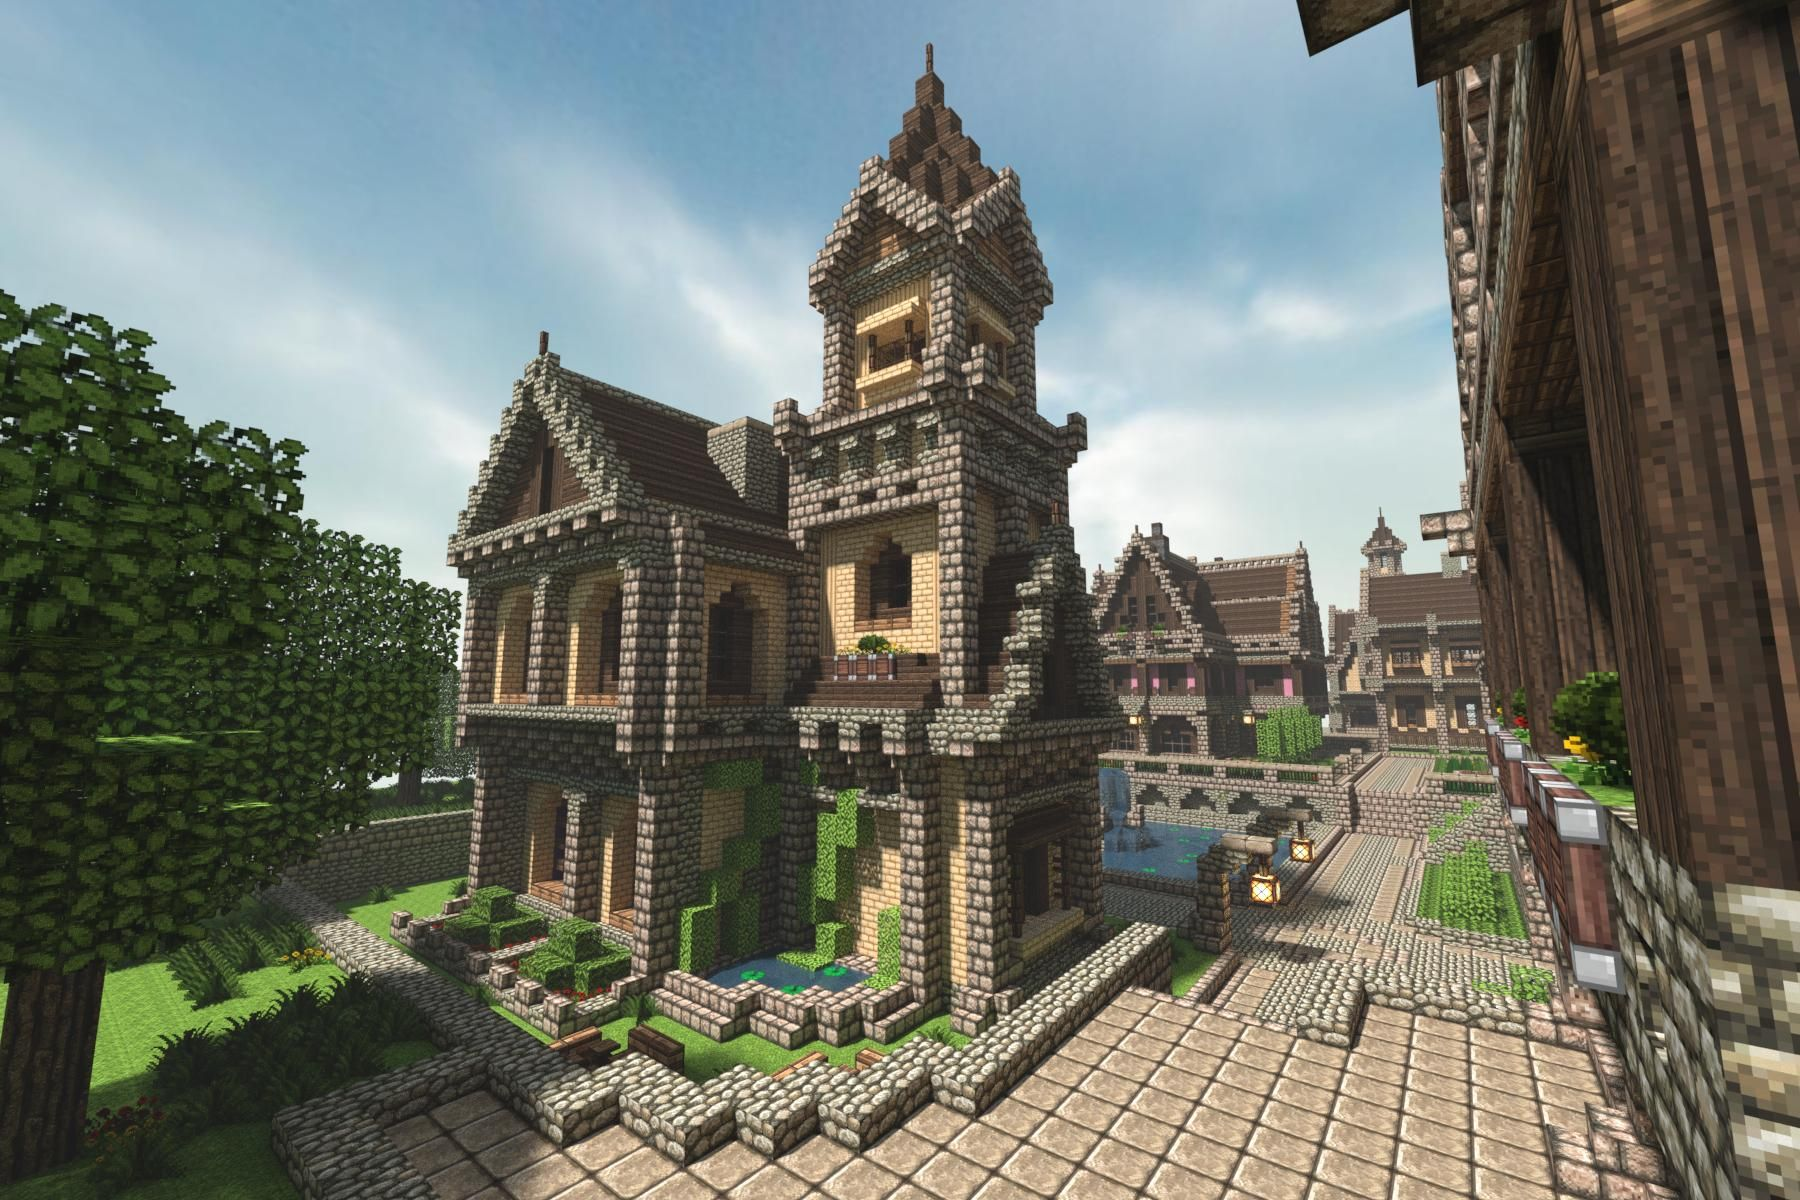 minecraft houses minecraft stuff minecraft ideas minecraft designs